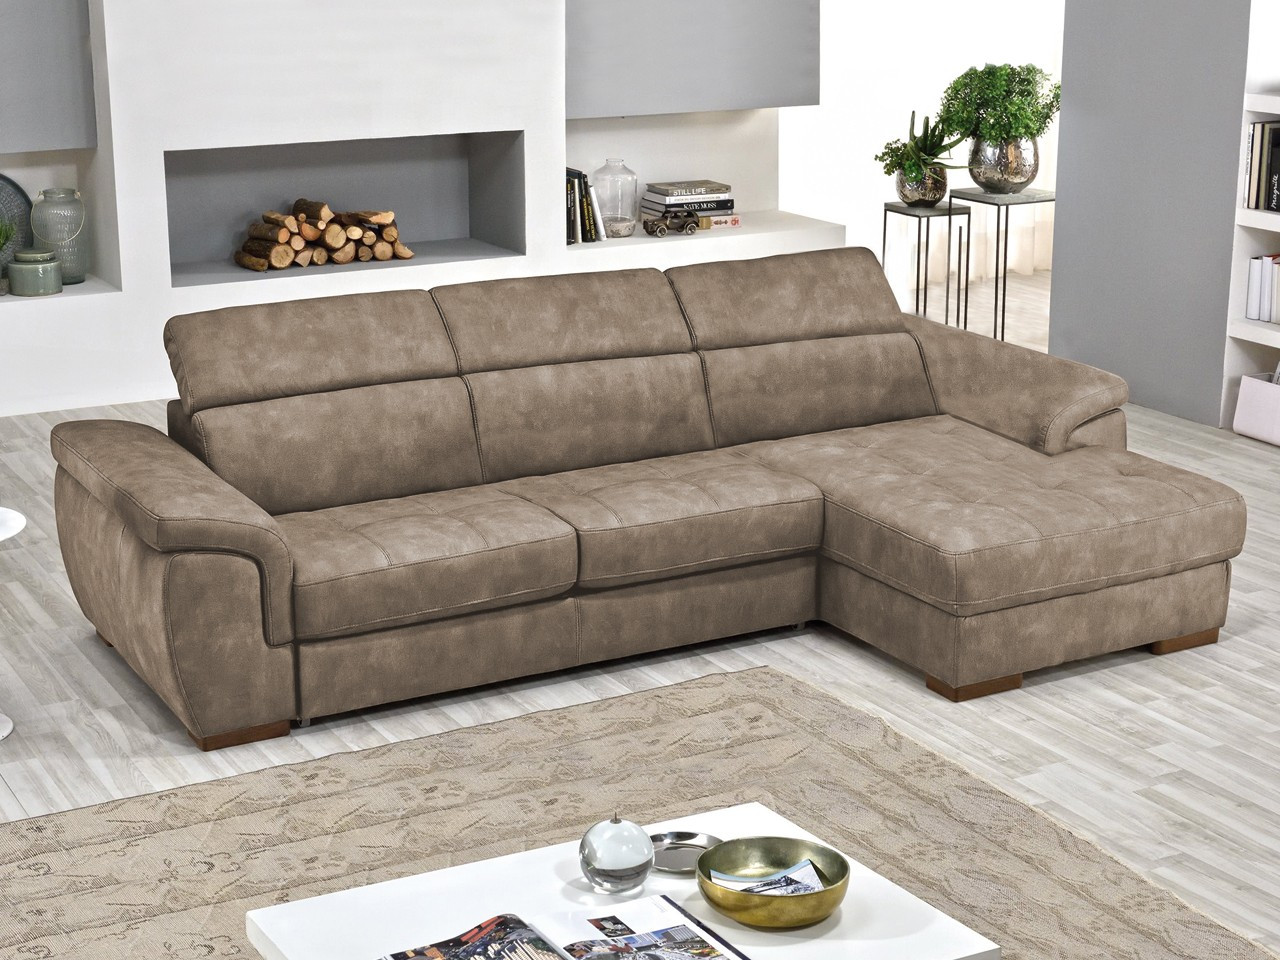 Sofa Chaise Longue Barato Impresionante sofas Chaise Longue Baratos Barcelona Of 49  Mejor sofa Chaise Longue Barato